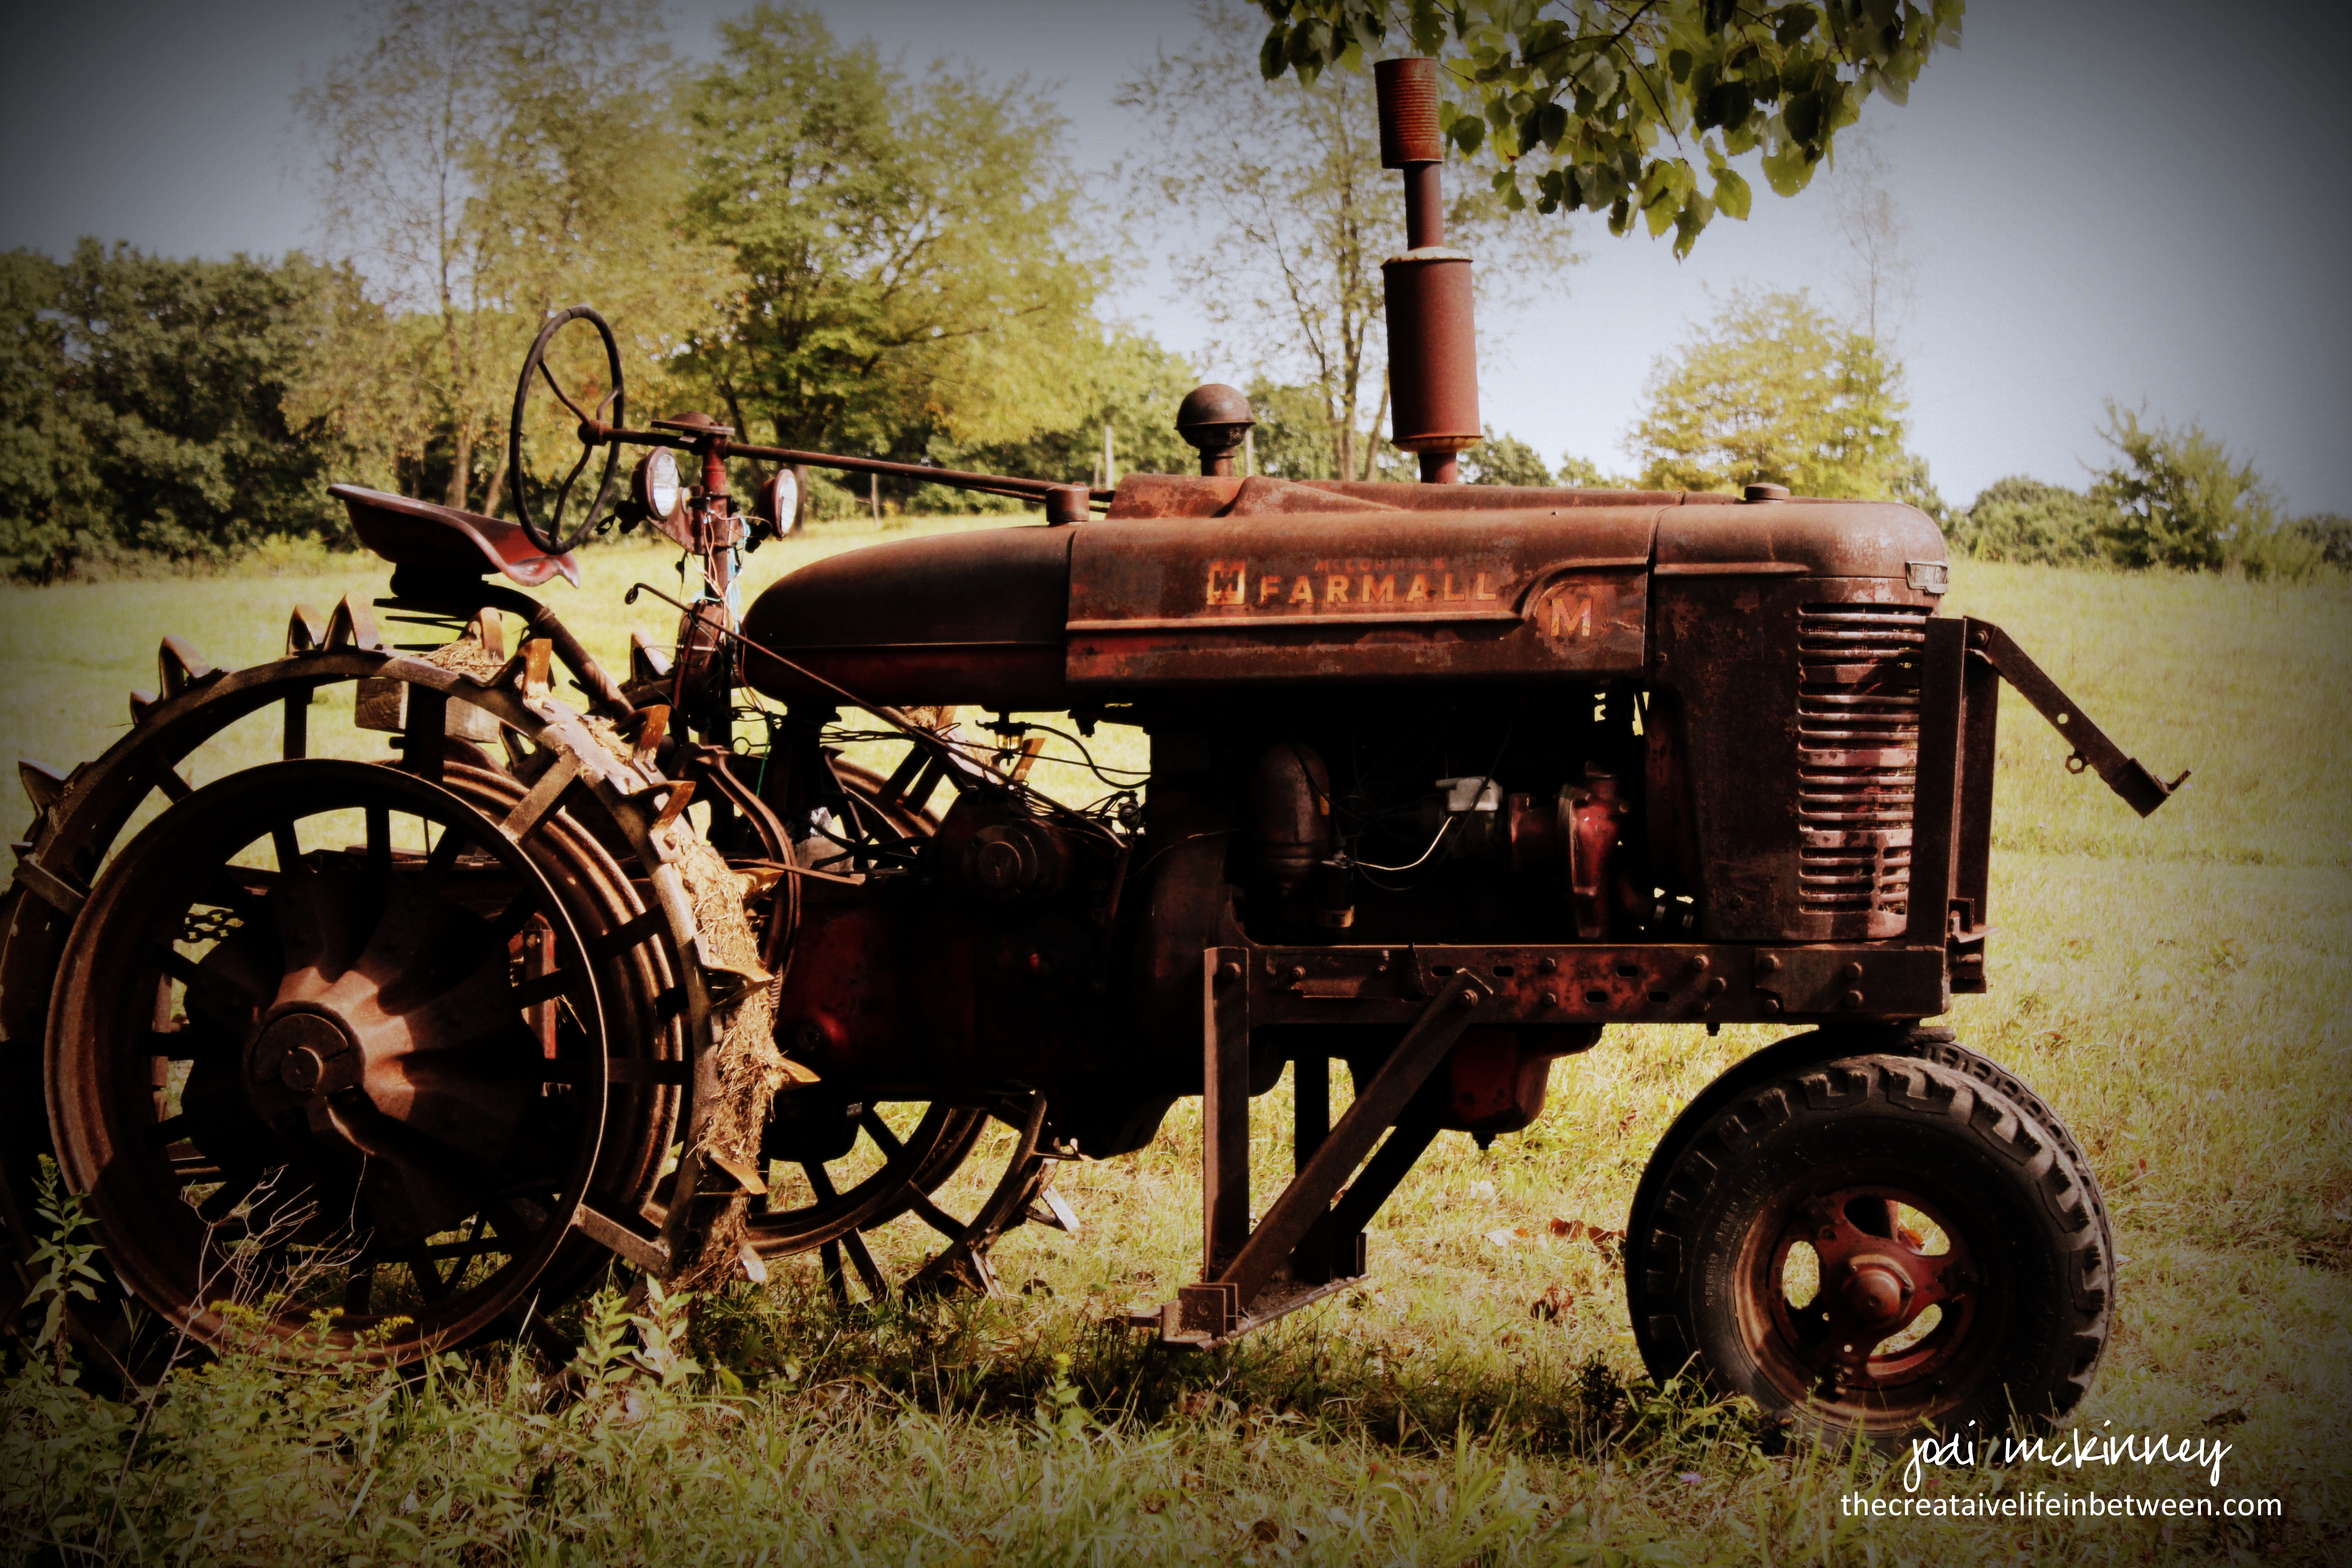 The Old Farmall Tractor, Mars, PA - September, 2017